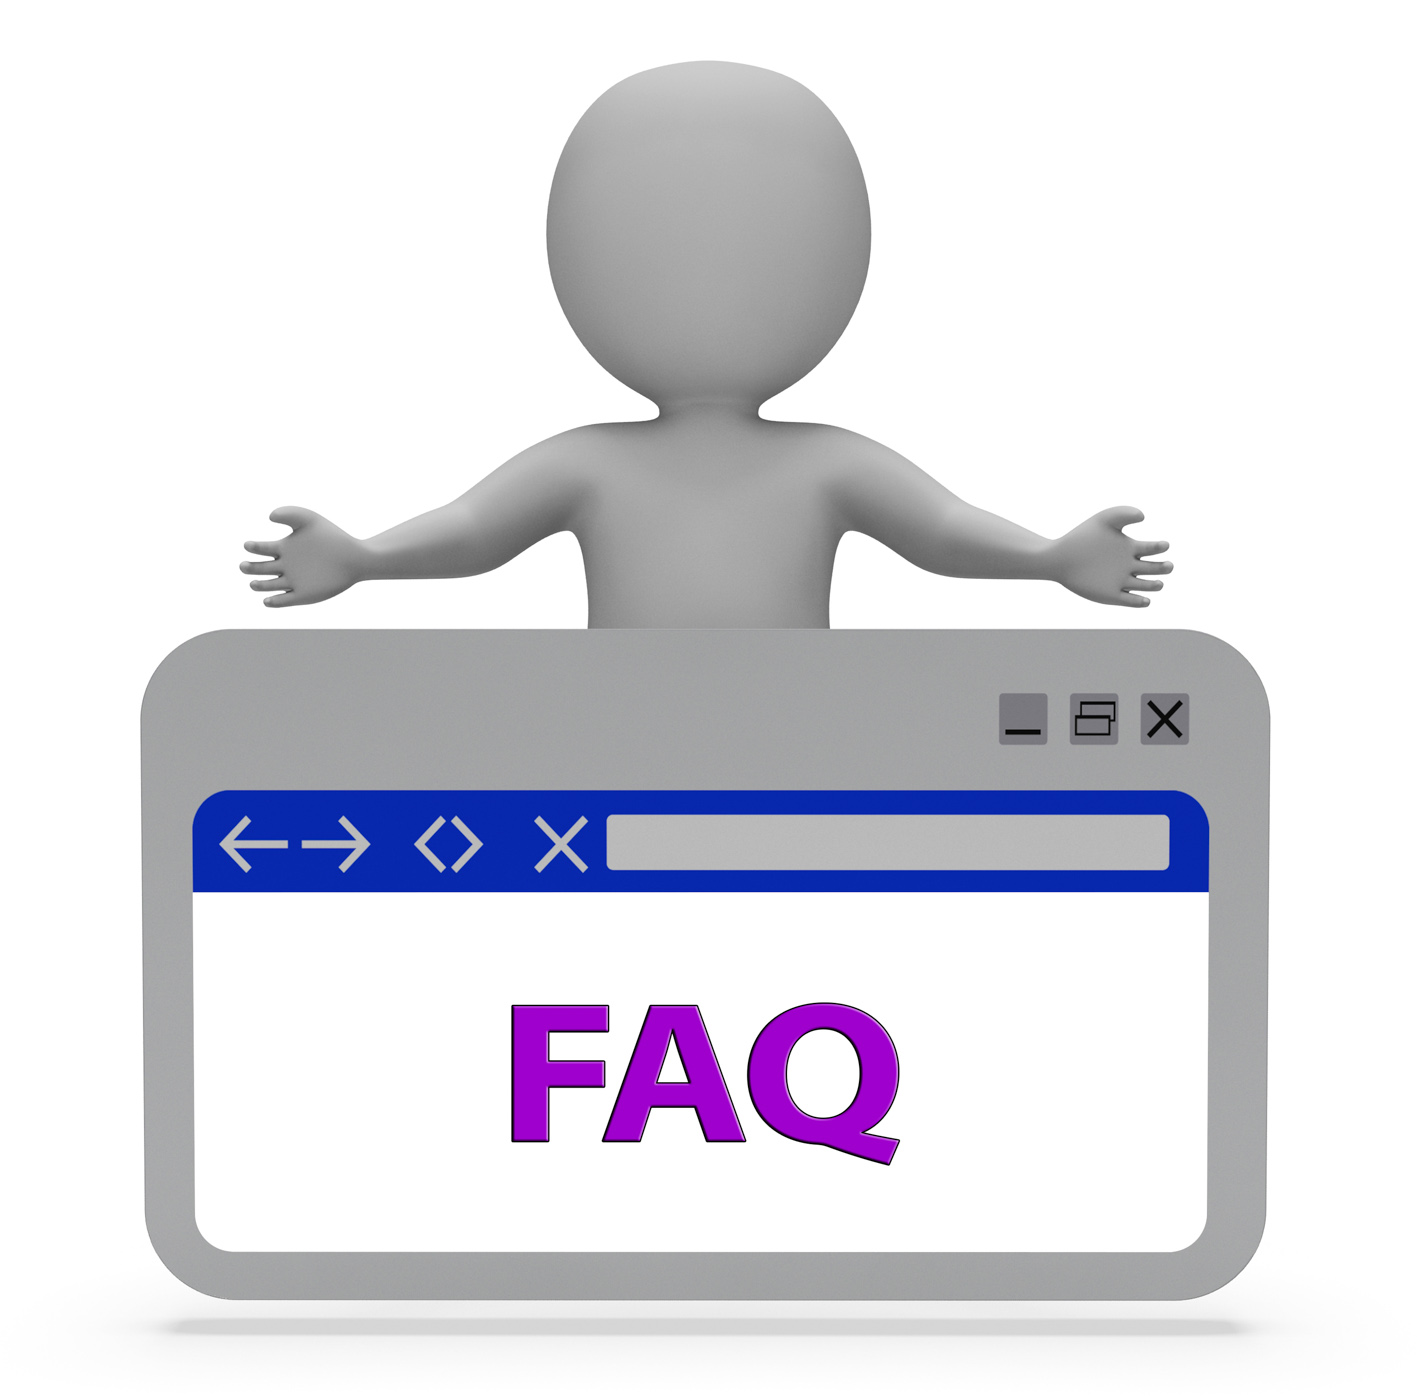 Faq webpage means frequently asked questions 3d rendering photo